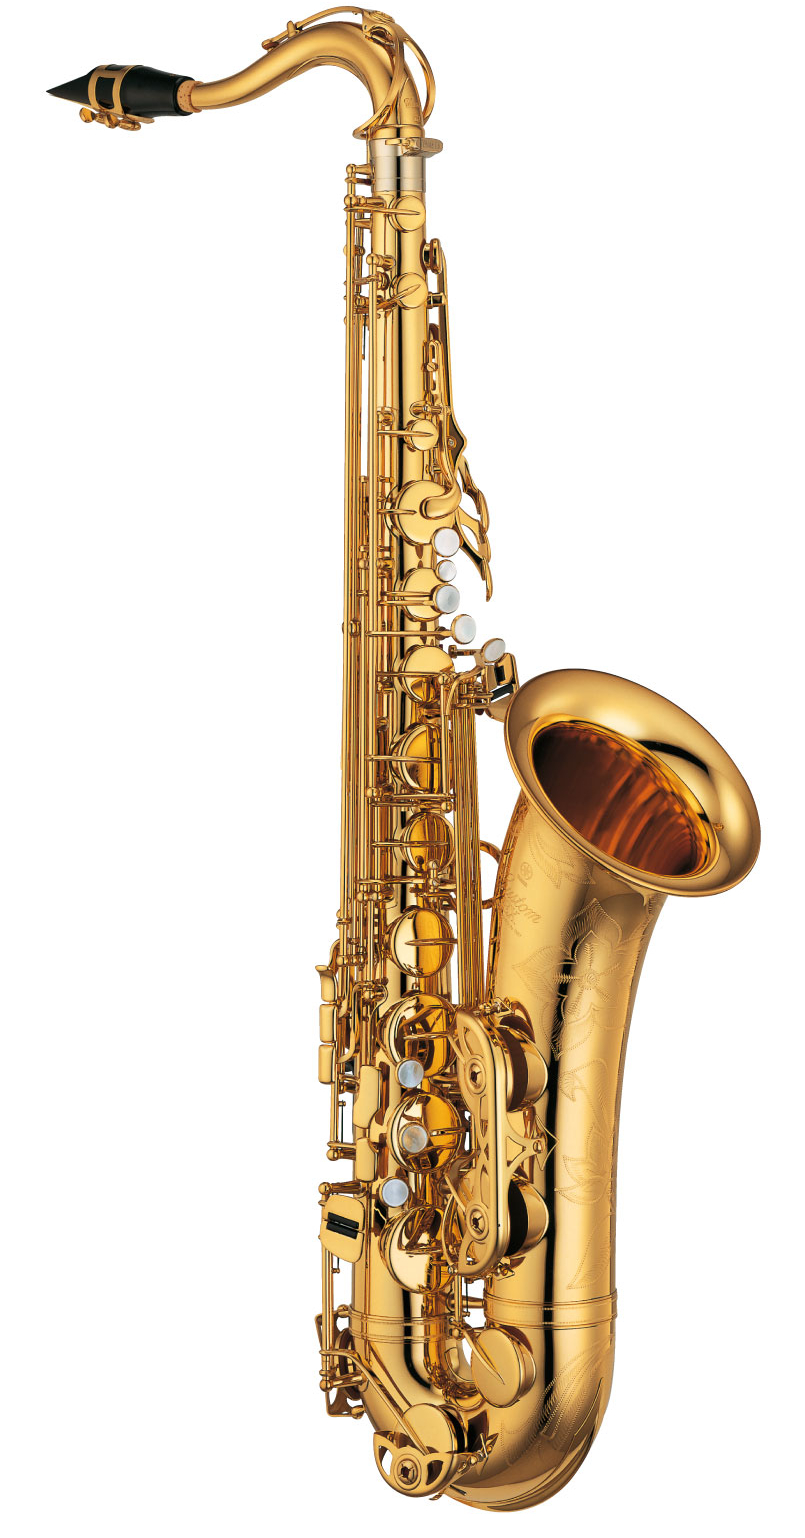 everything saxophone throwdown yamaha 39 s custom ex tenor saxophone vs selmer 39 s reference 36. Black Bedroom Furniture Sets. Home Design Ideas